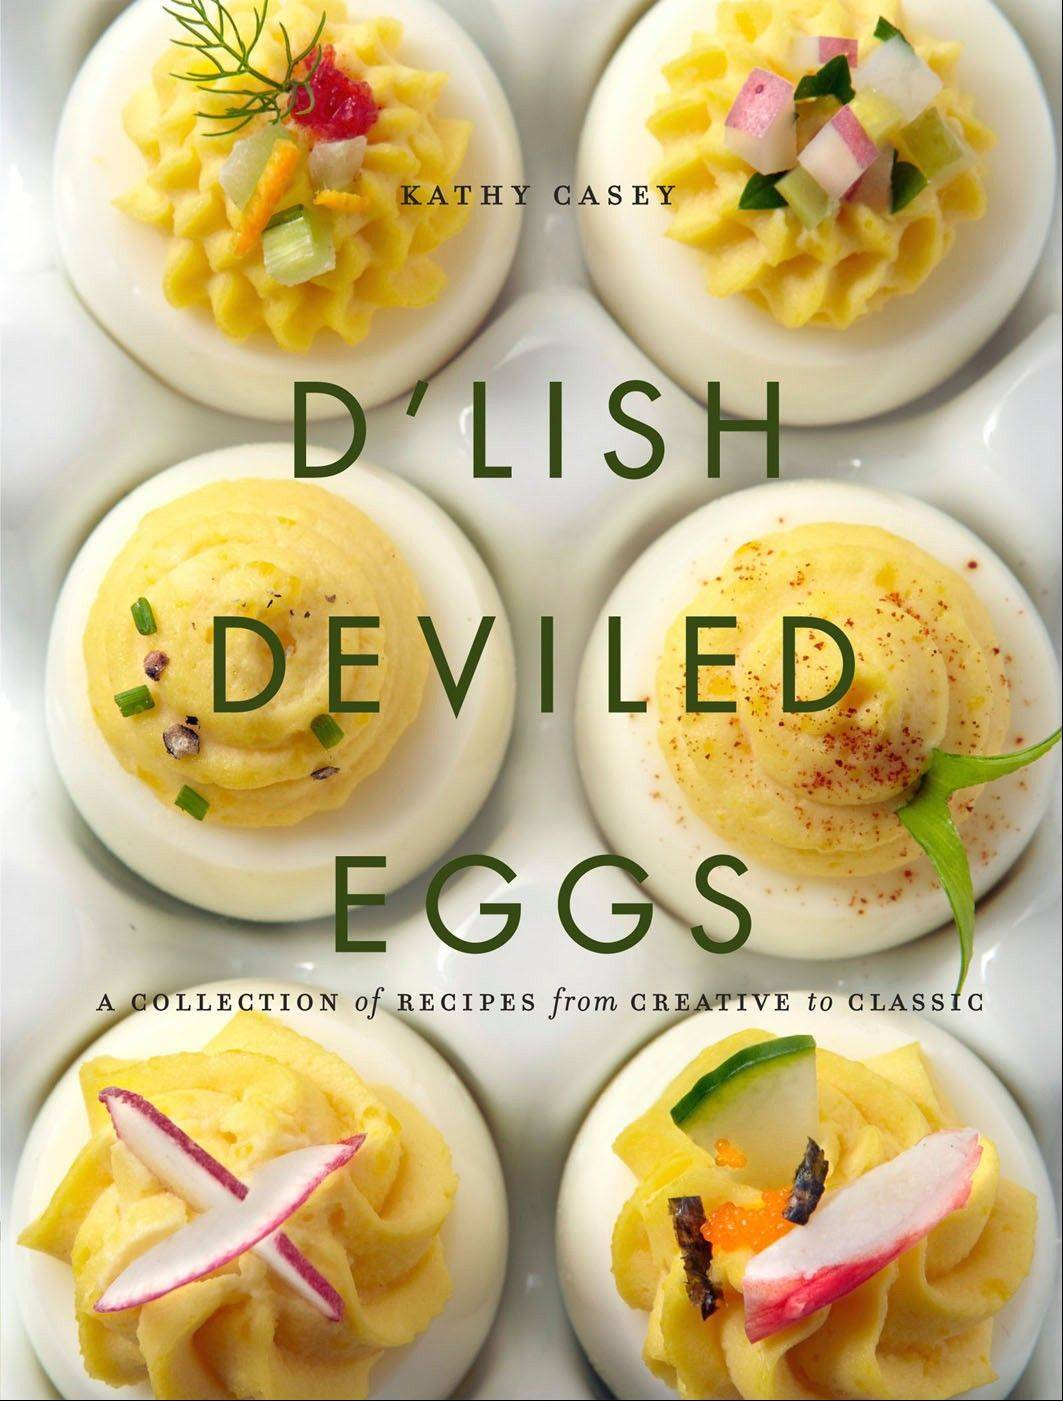 Garnishes, extra ingredients make deviled eggs downright heavenly